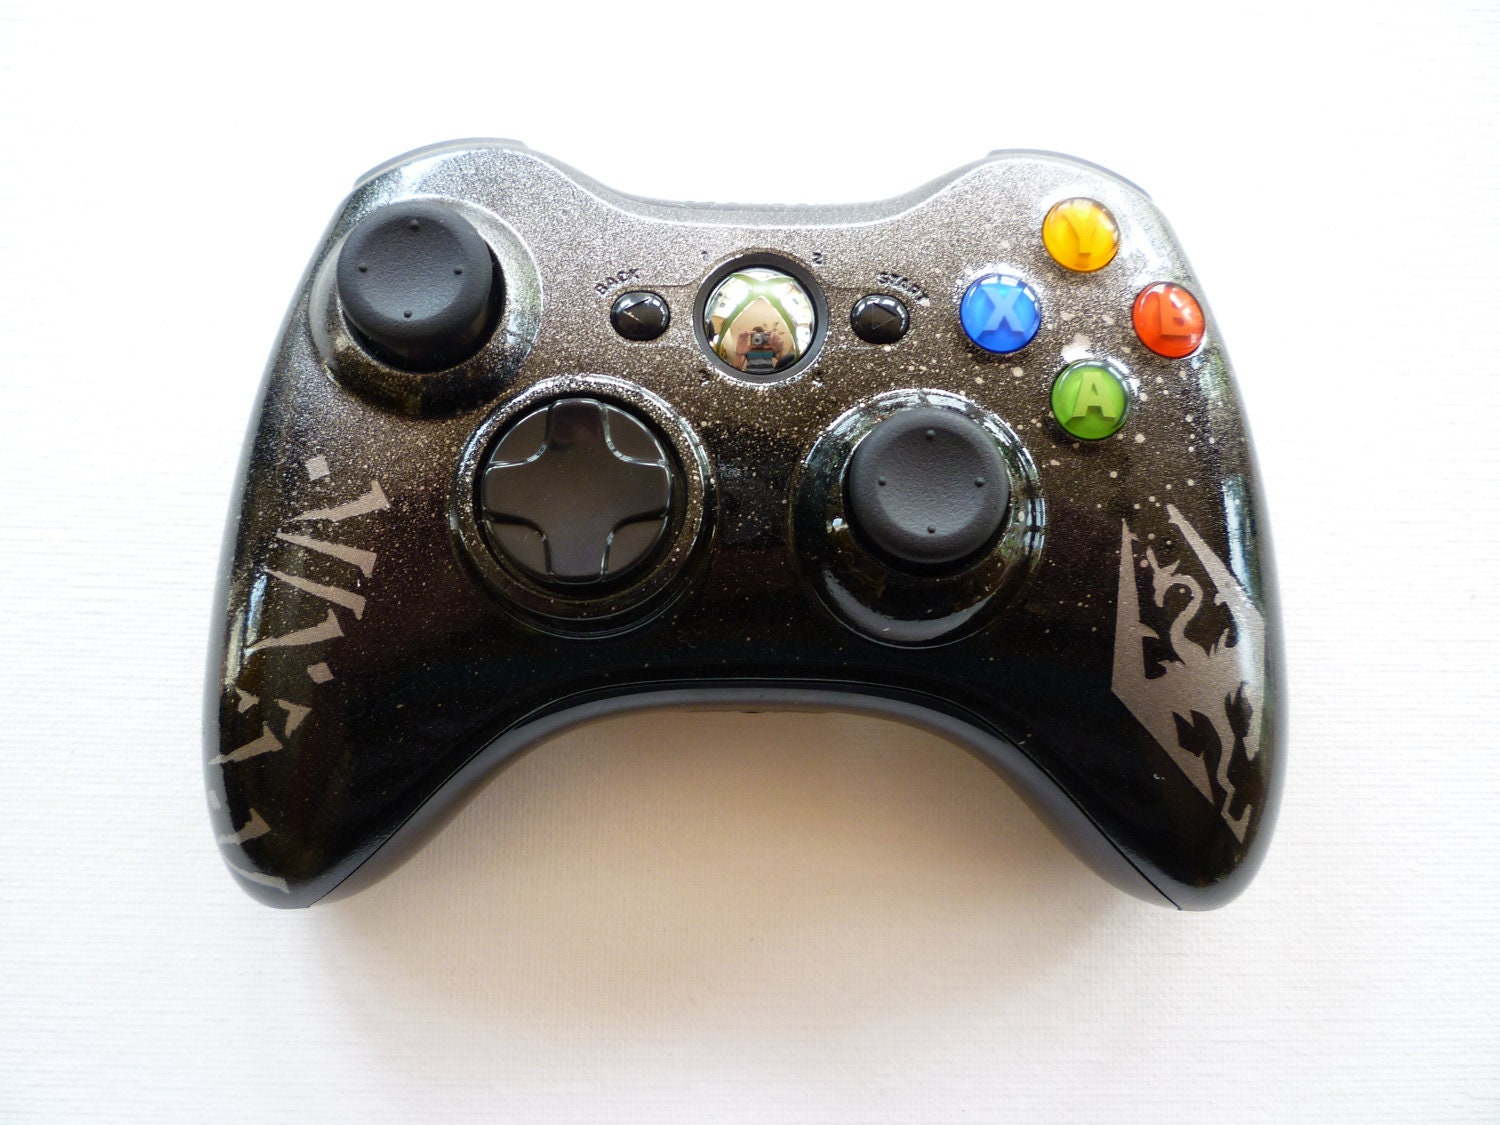 Custom Painted Skyrim Controller for Xbox 360